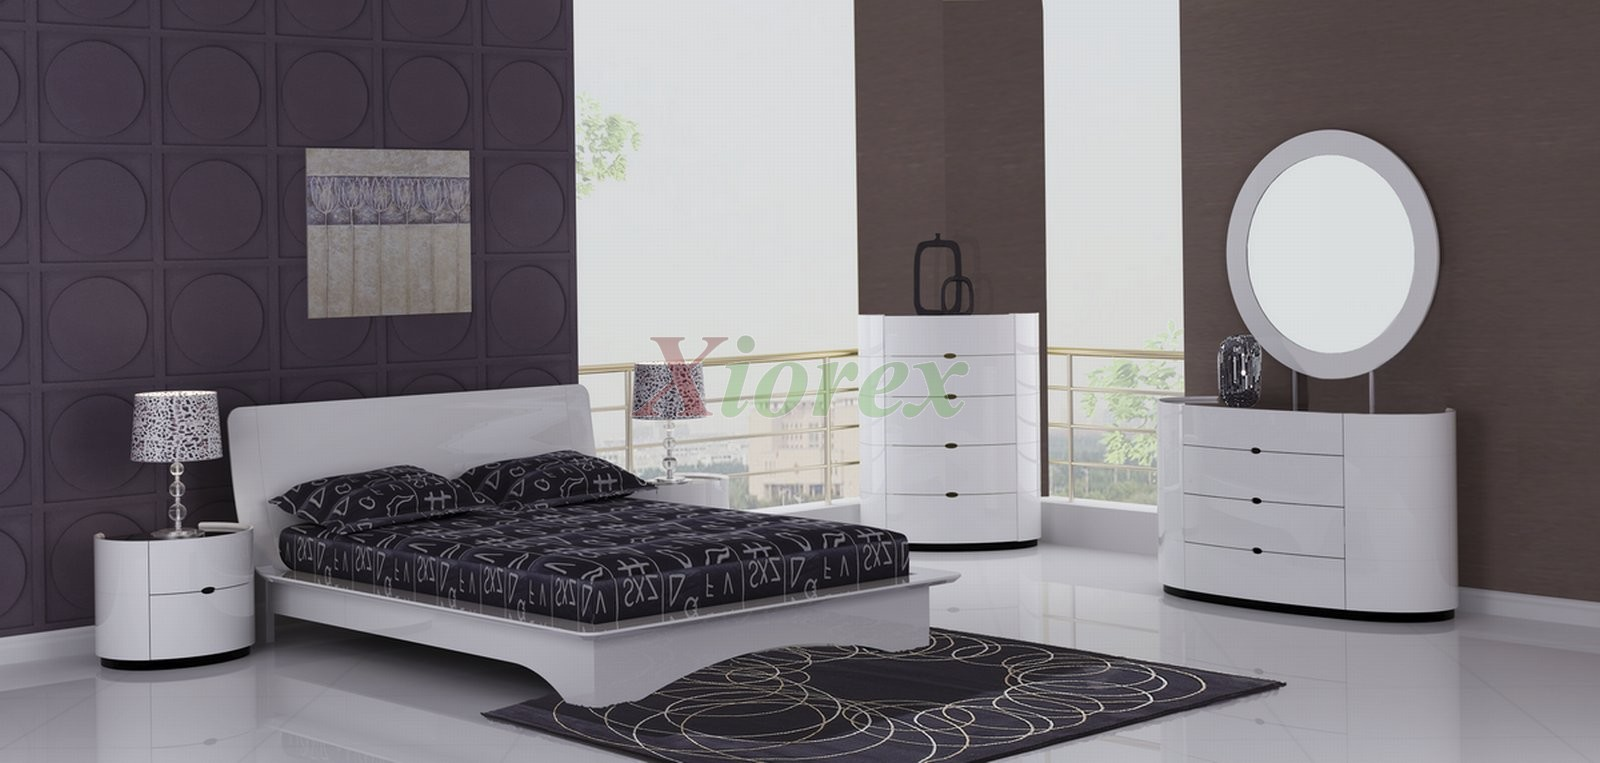 Eri all white modern bedroom furniture sets canada xiorex for White dresser set bedroom furniture